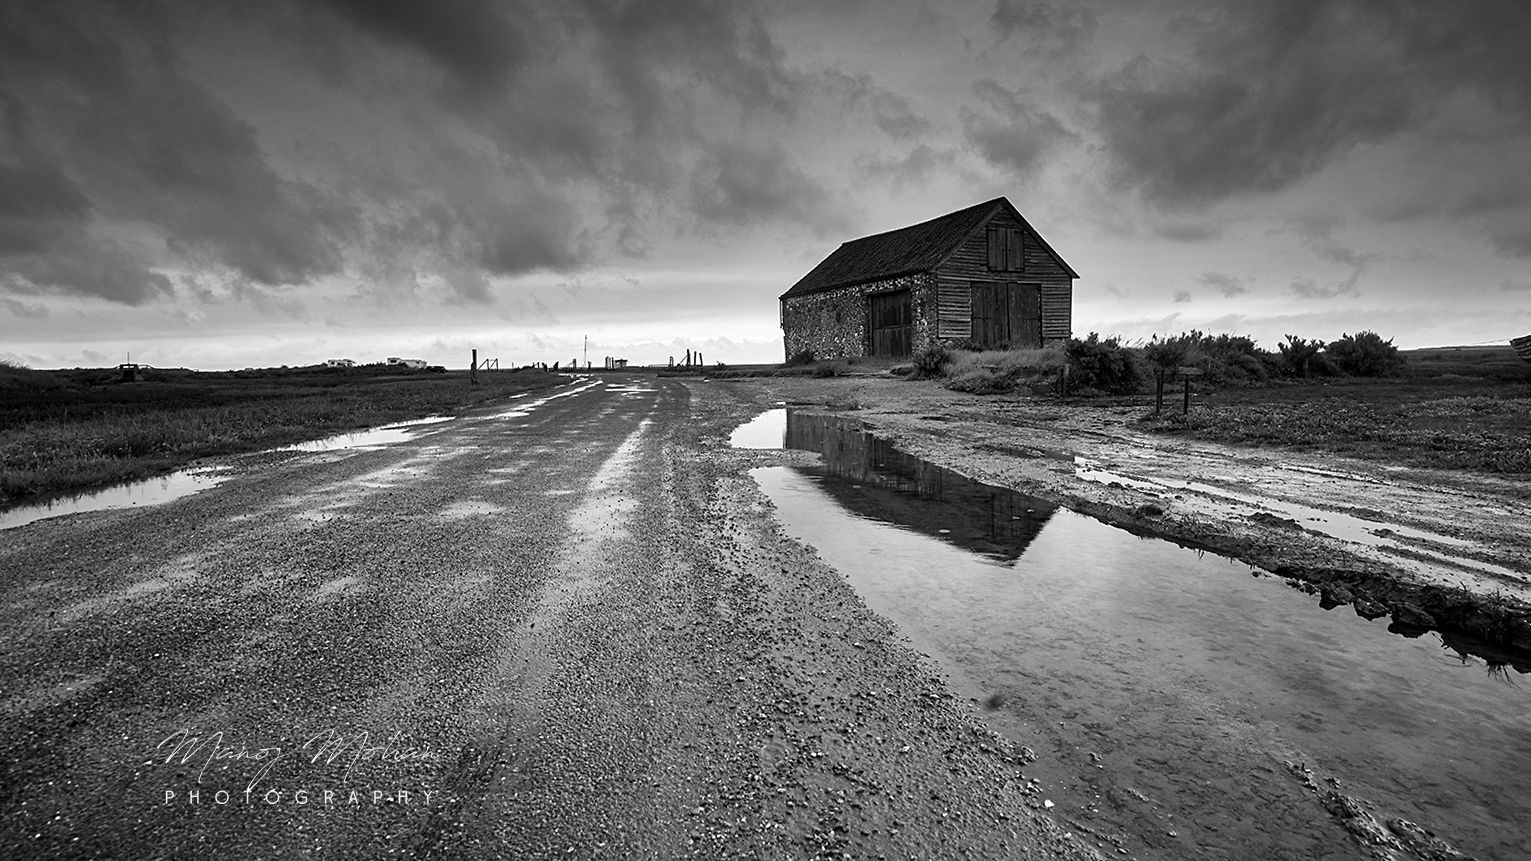 Thornham, Norfolk coast monochrome